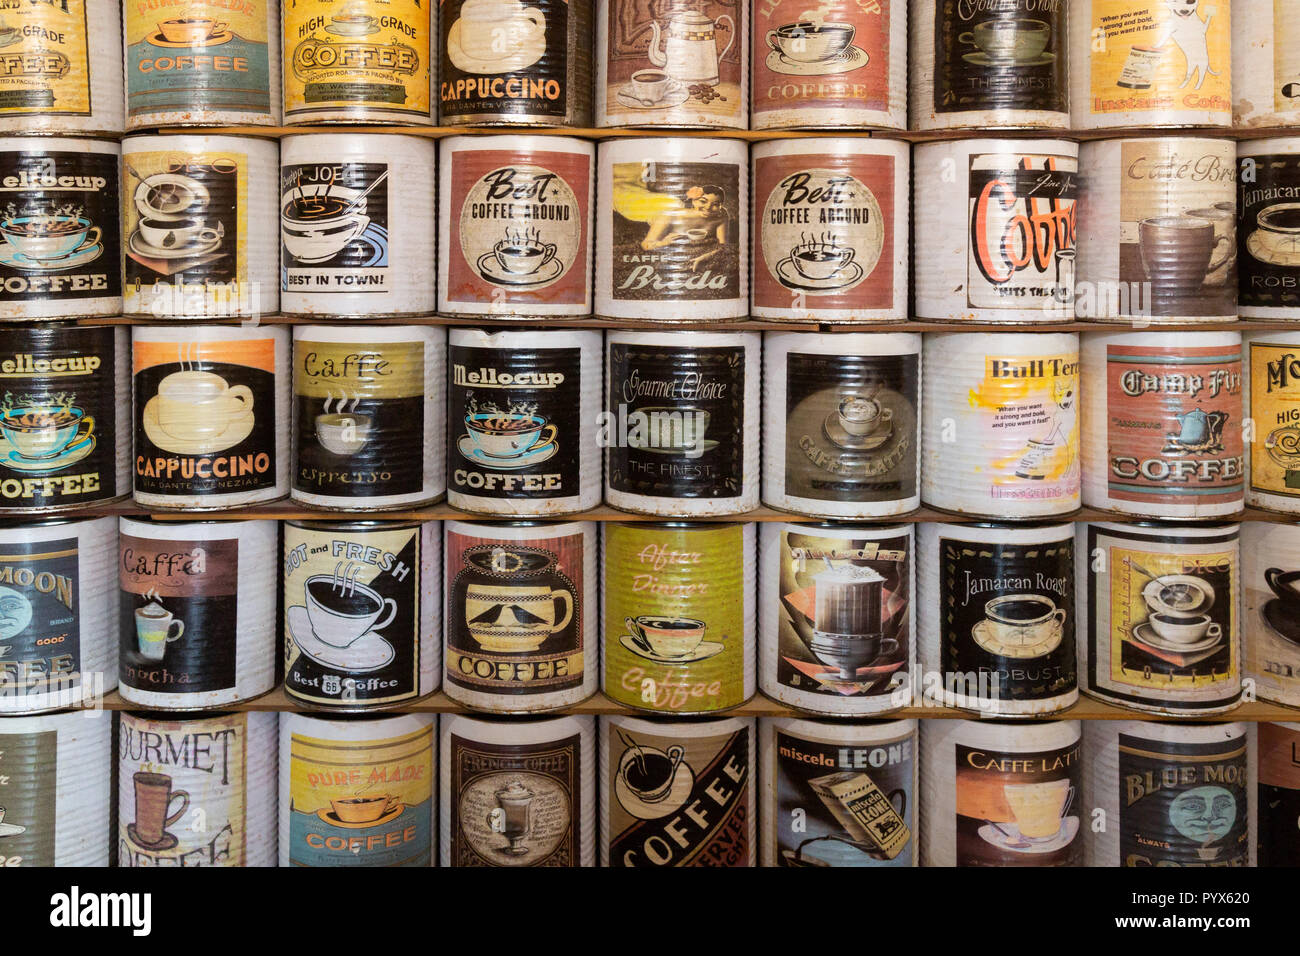 Old vintage coffee cans or tins of coffee, Namibia, Africa - Stock Image